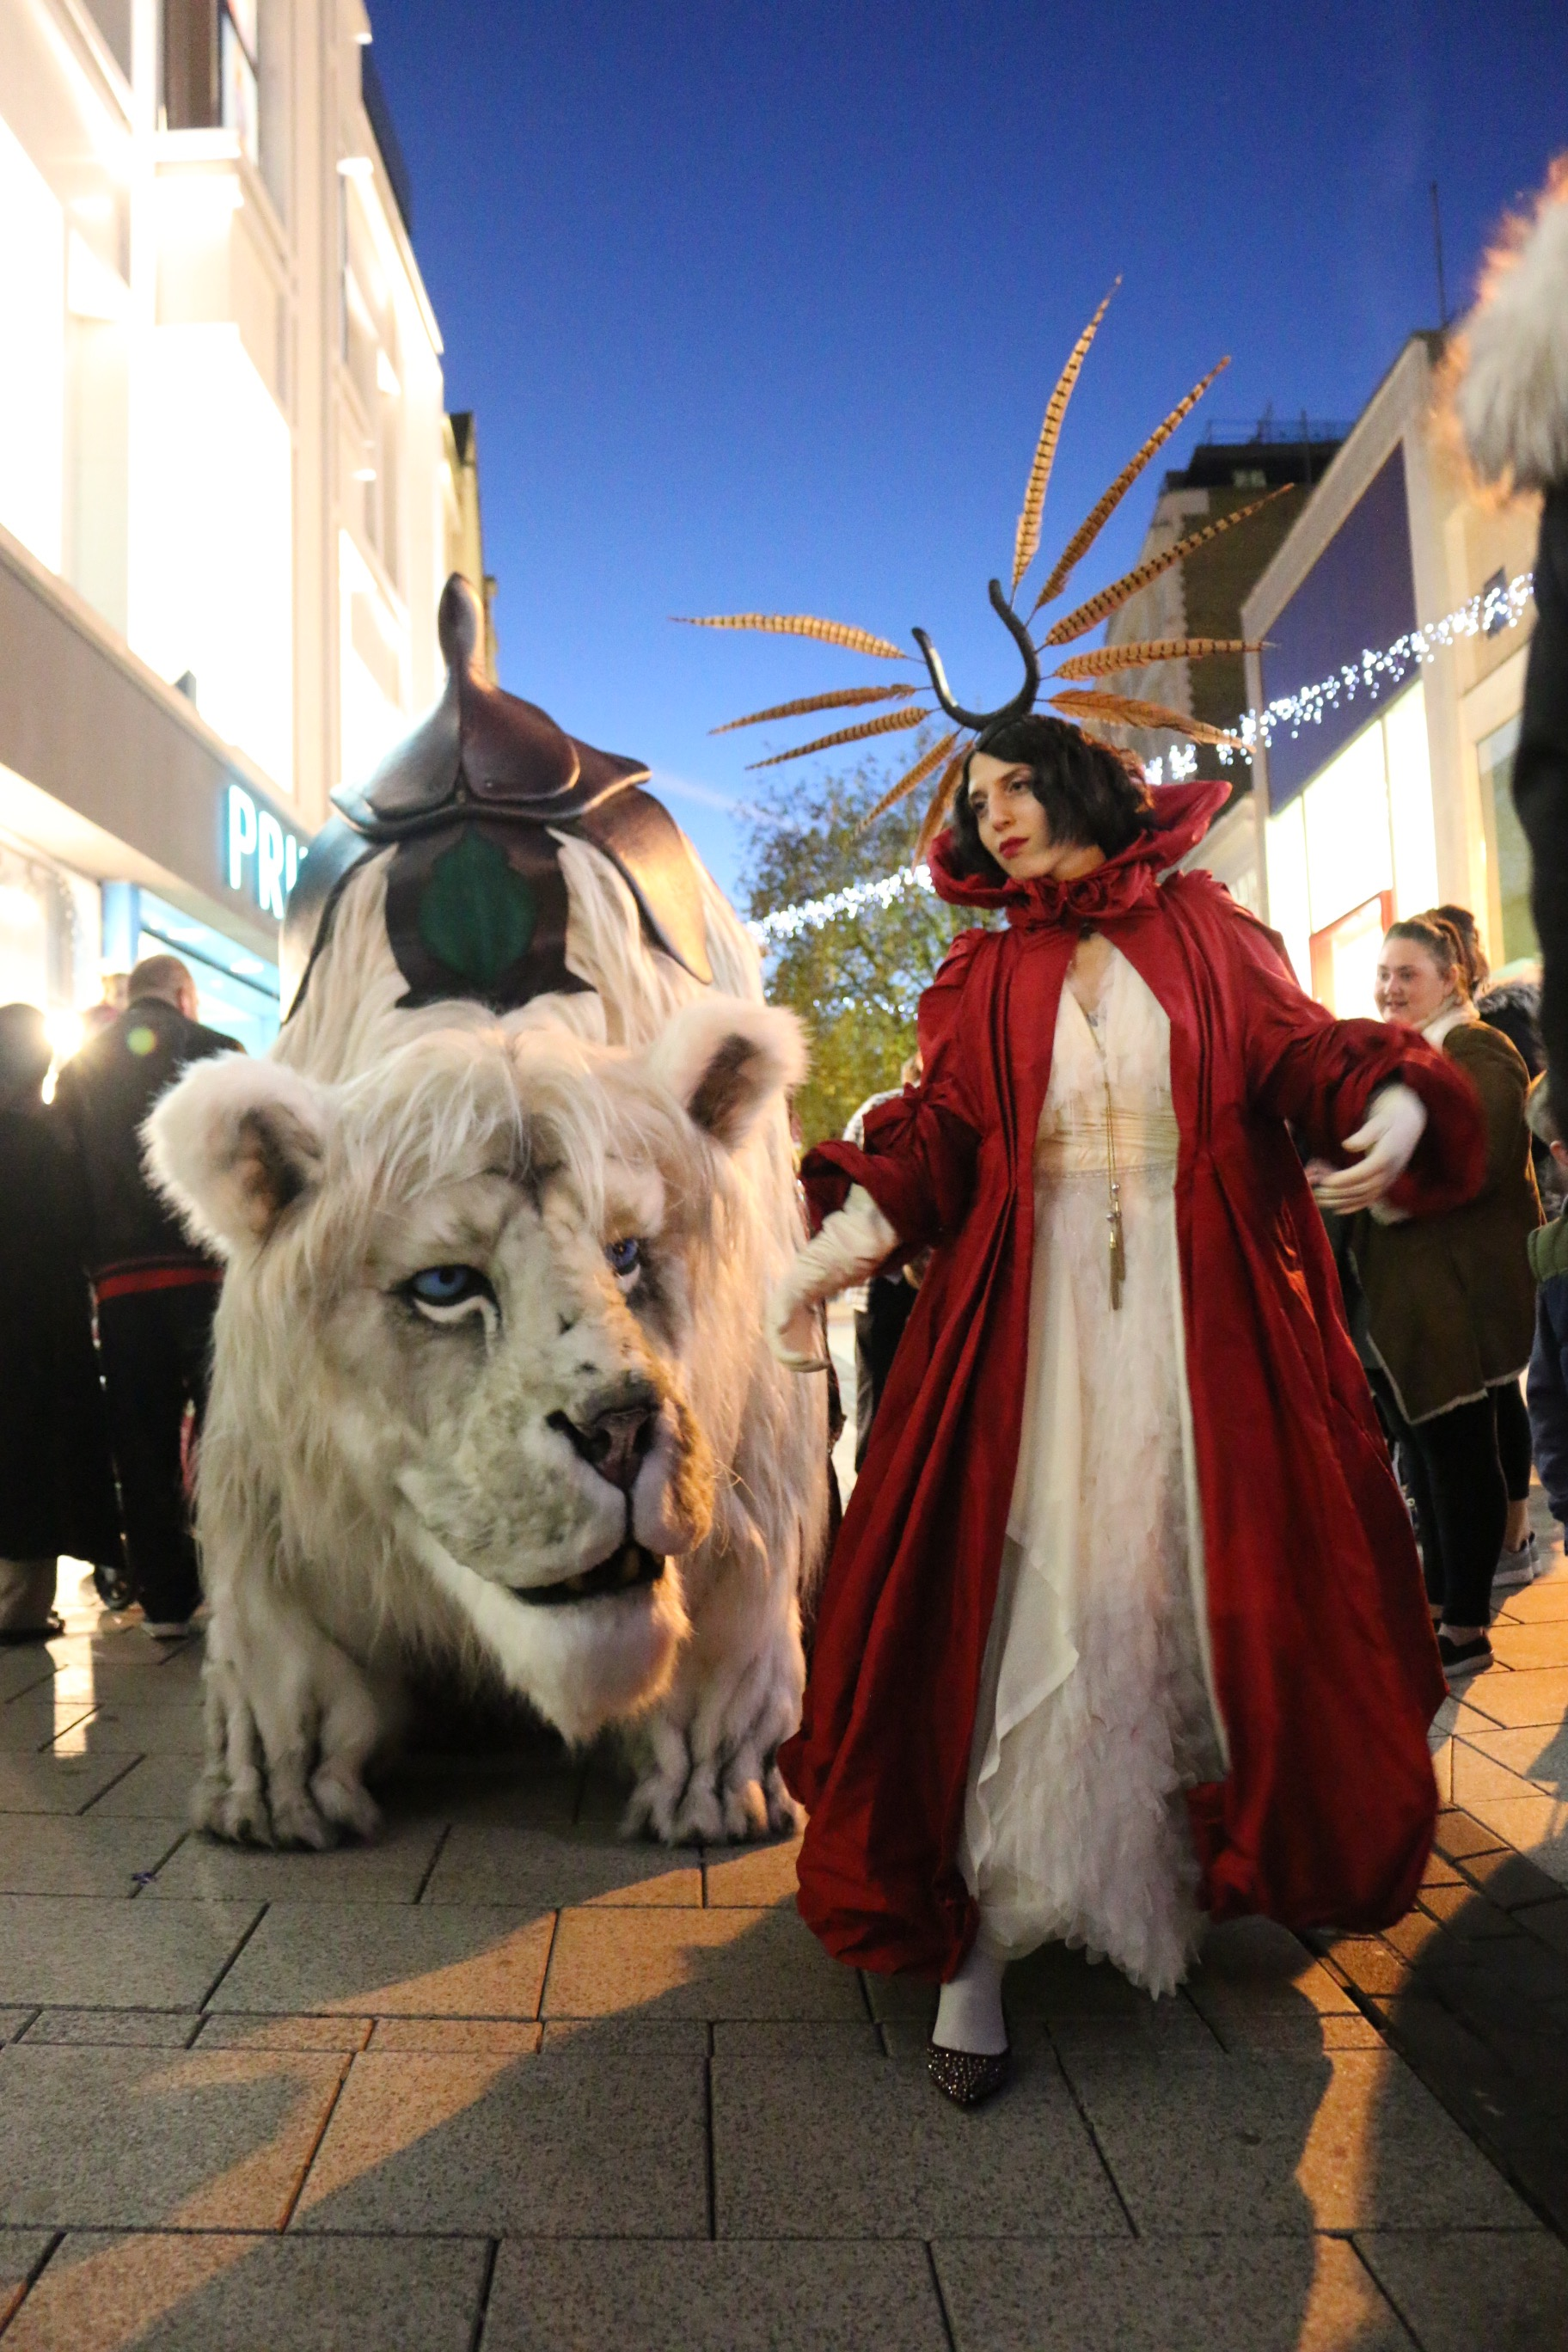 Meet the snow lion this Christmas in New Square Shopping Centre